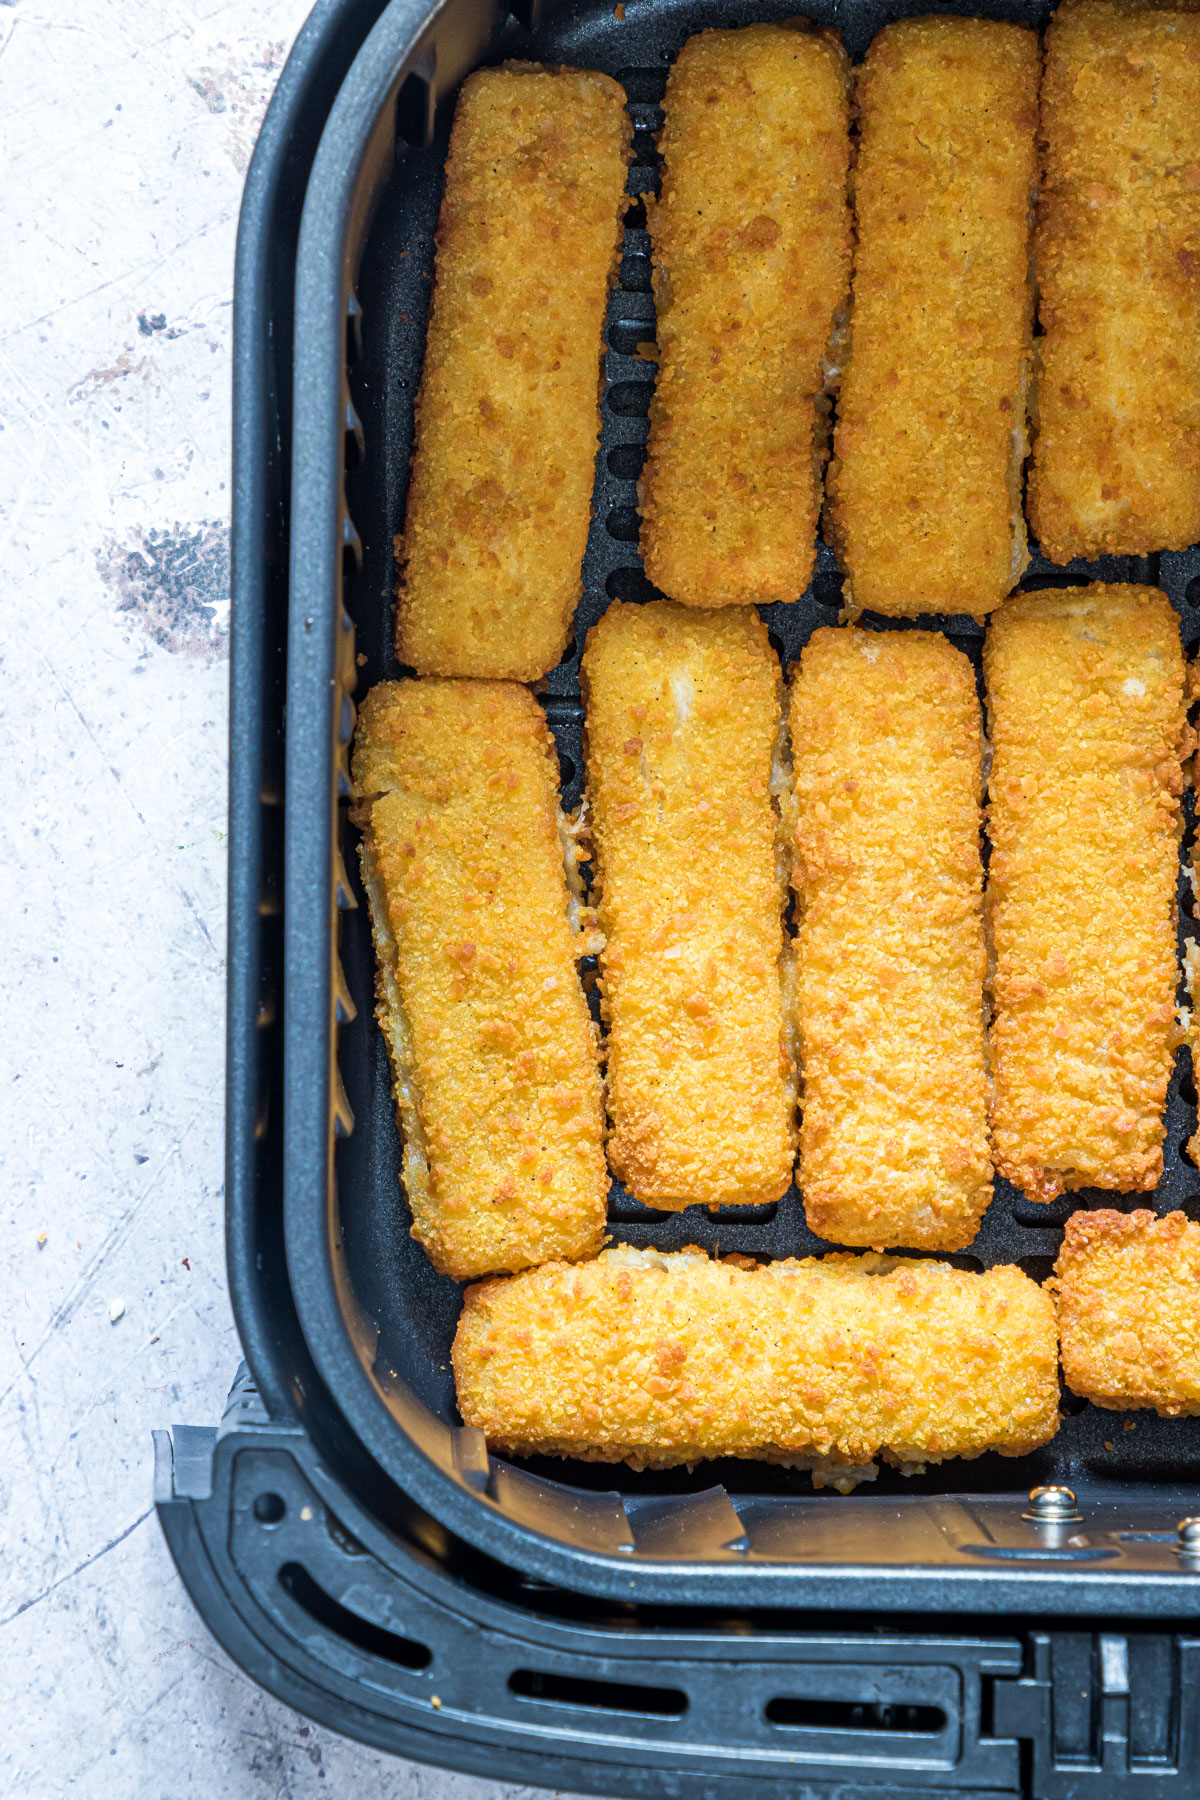 close up view of the cooked frozen fish sticks in air fryer basket